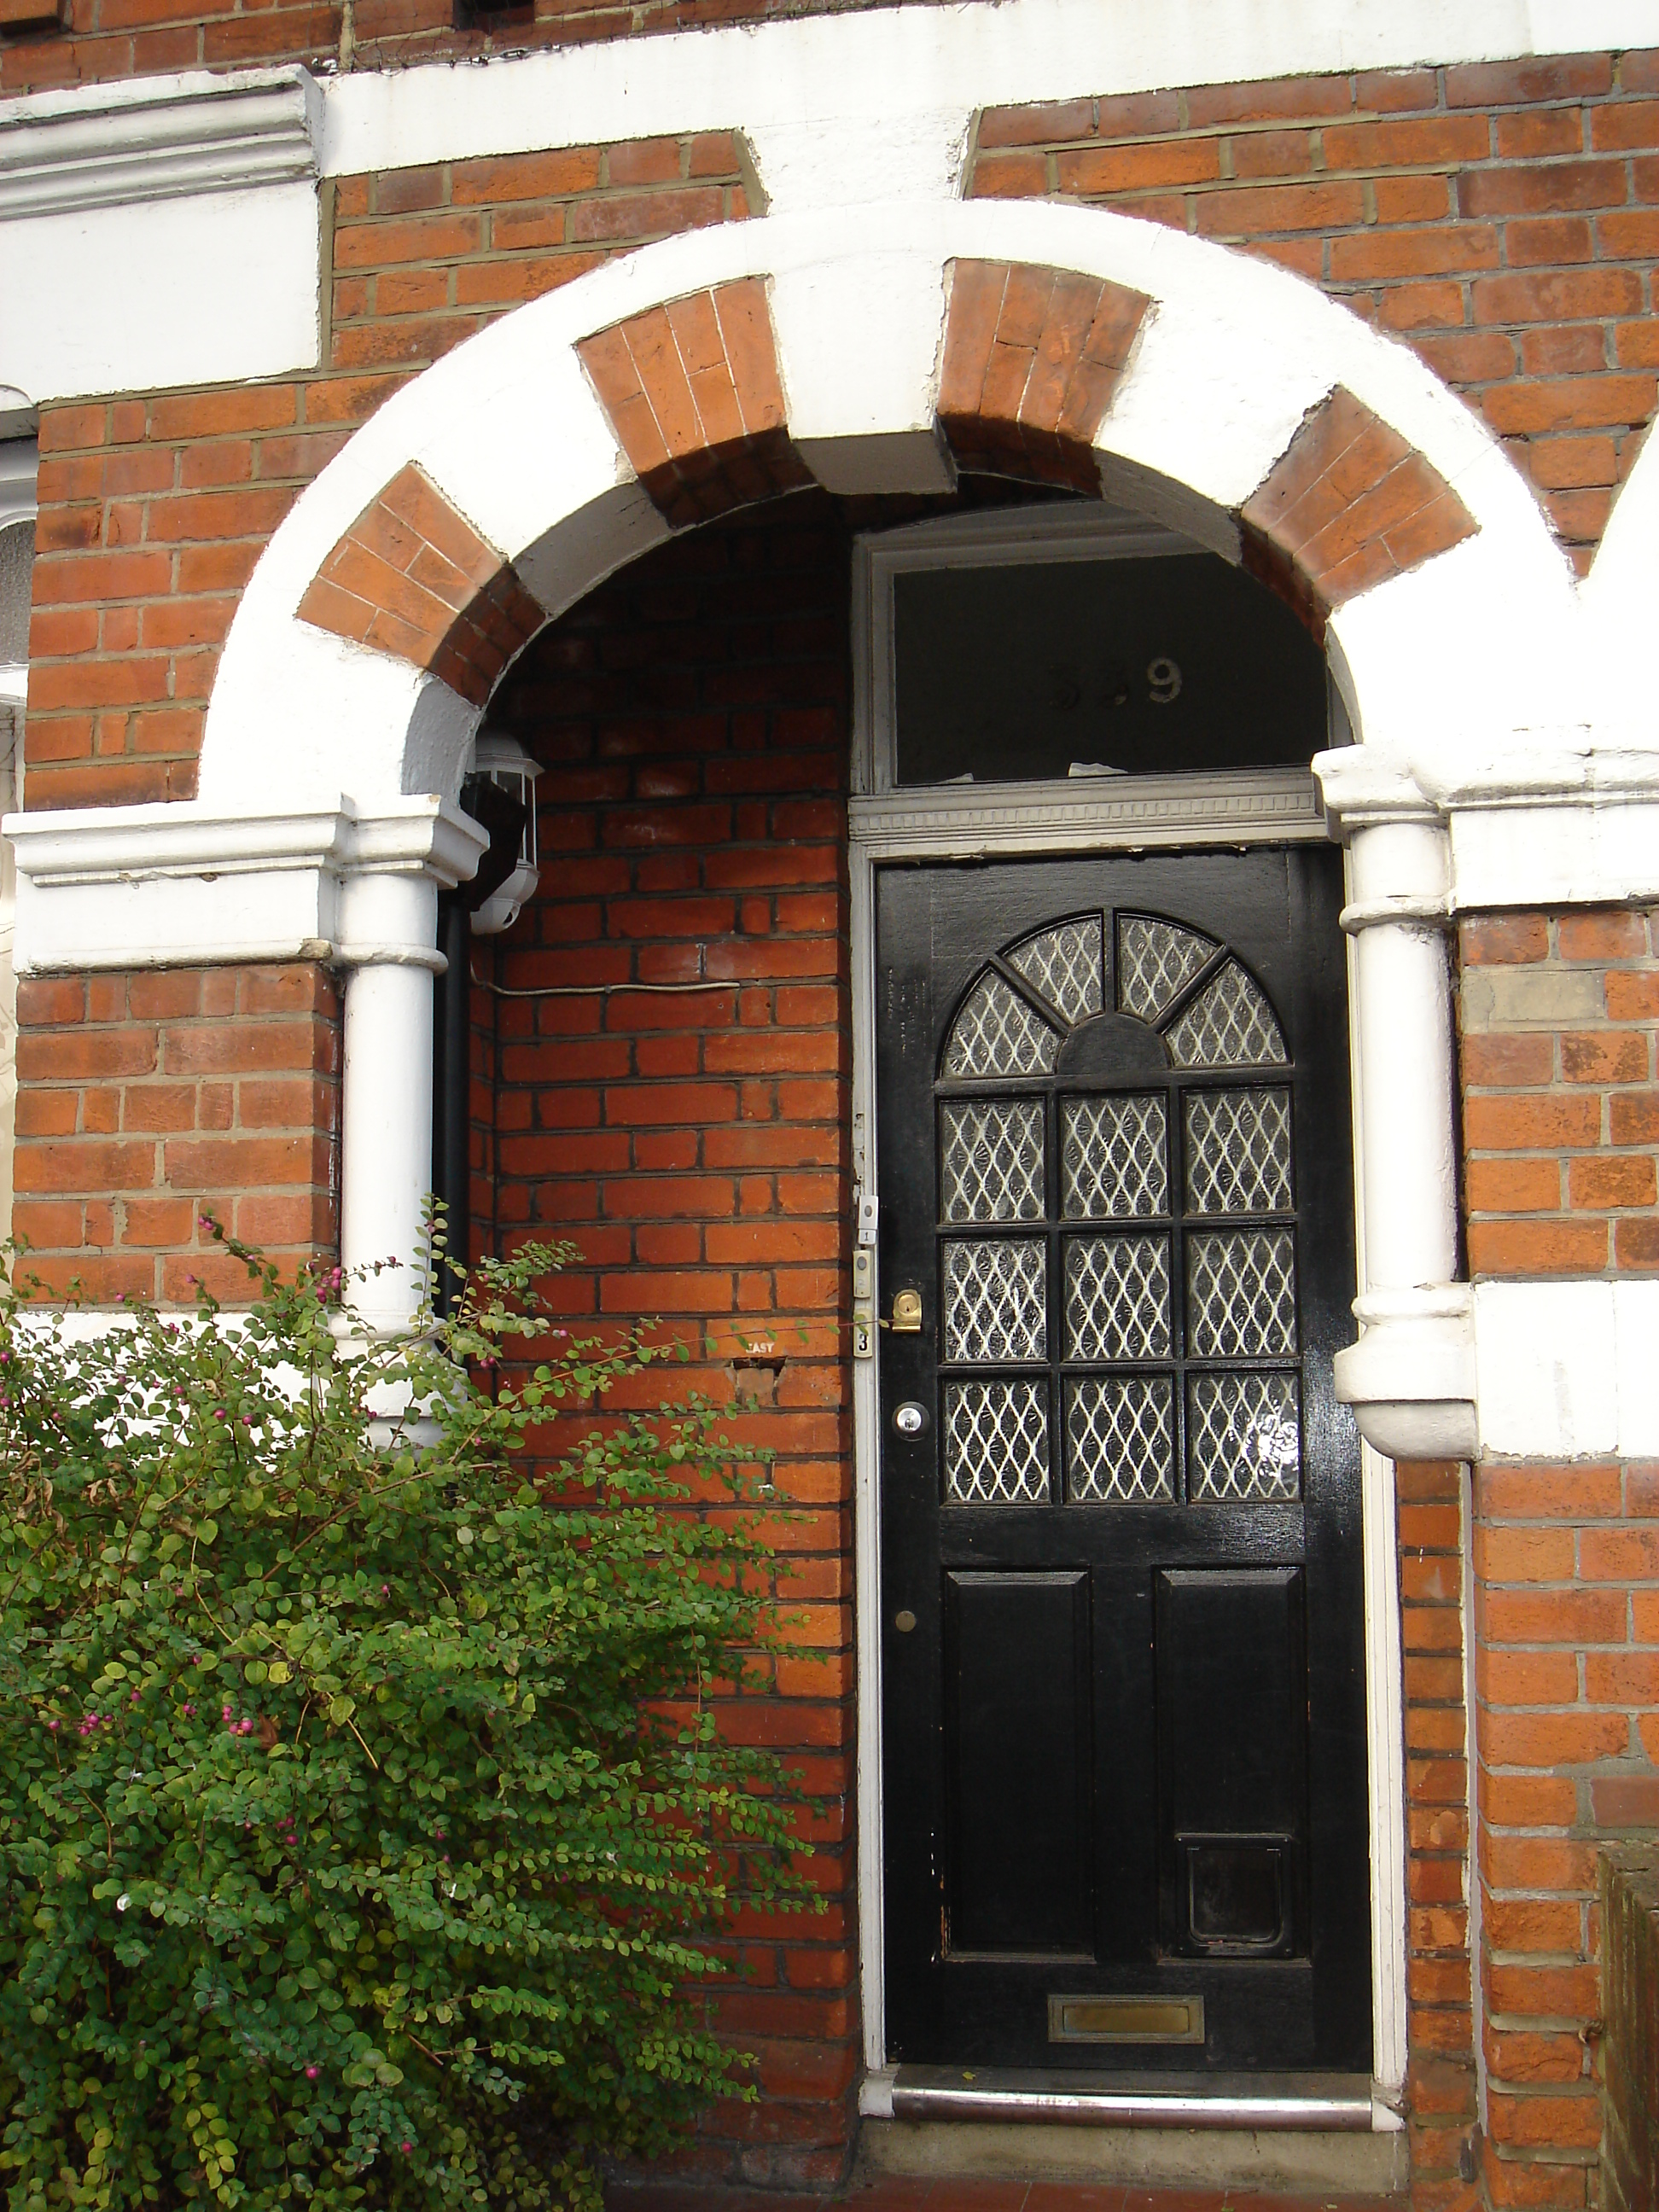 1 bedroom Furnished Flat to rent on Kingston Road Wimbledon Chase SW20 by private & 1 Bed Flat to Rent - Kingston Road Wimbledon Chase SW20 8JX